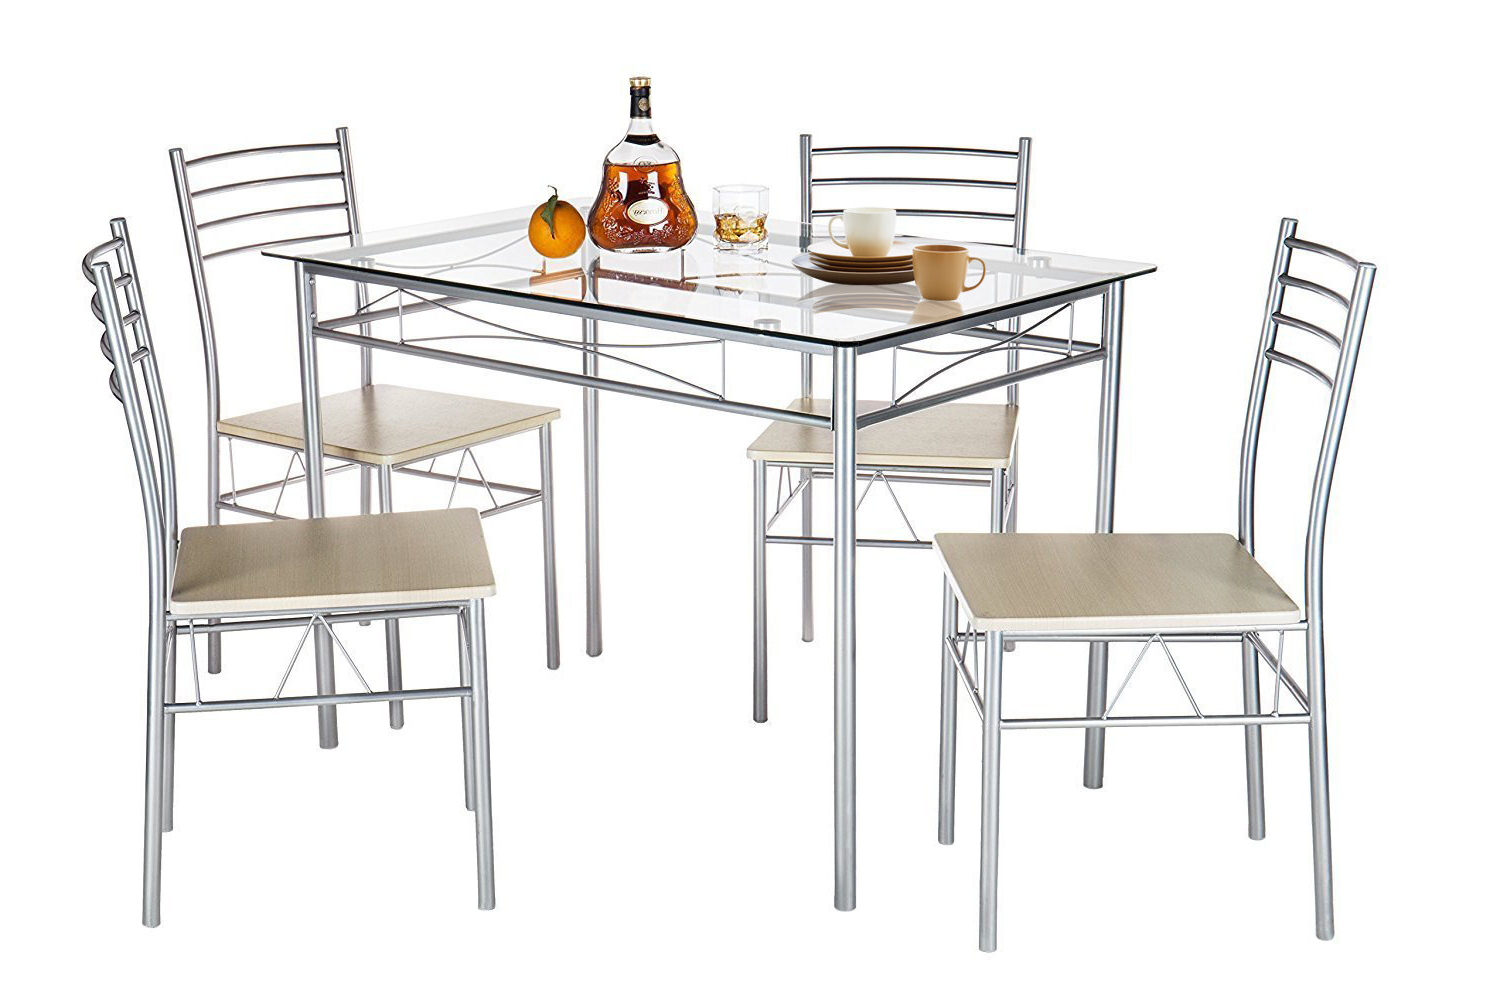 Ebern Designs Liles 5 Piece Breakfast Nook Dining Set & Reviews Pertaining To Best And Newest Taulbee 5 Piece Dining Sets (Gallery 22 of 25)